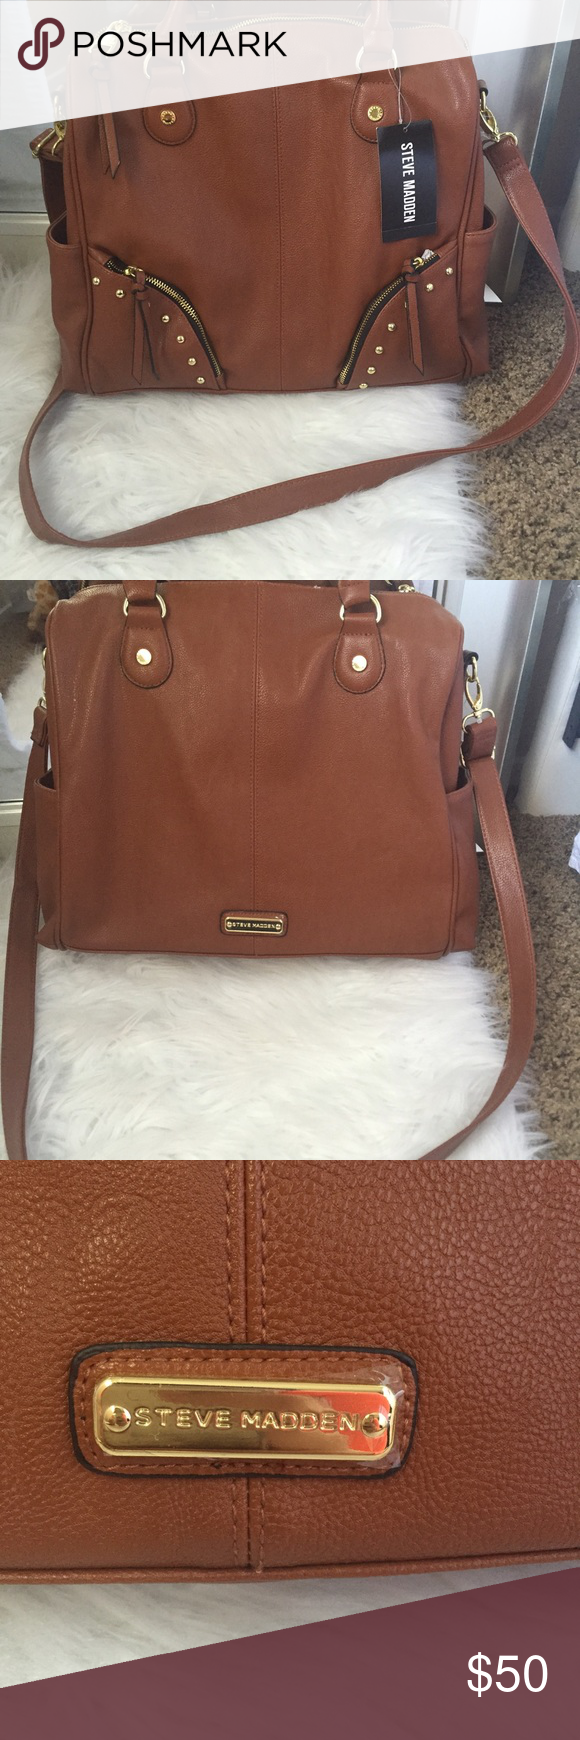 Steve Madden Purse New